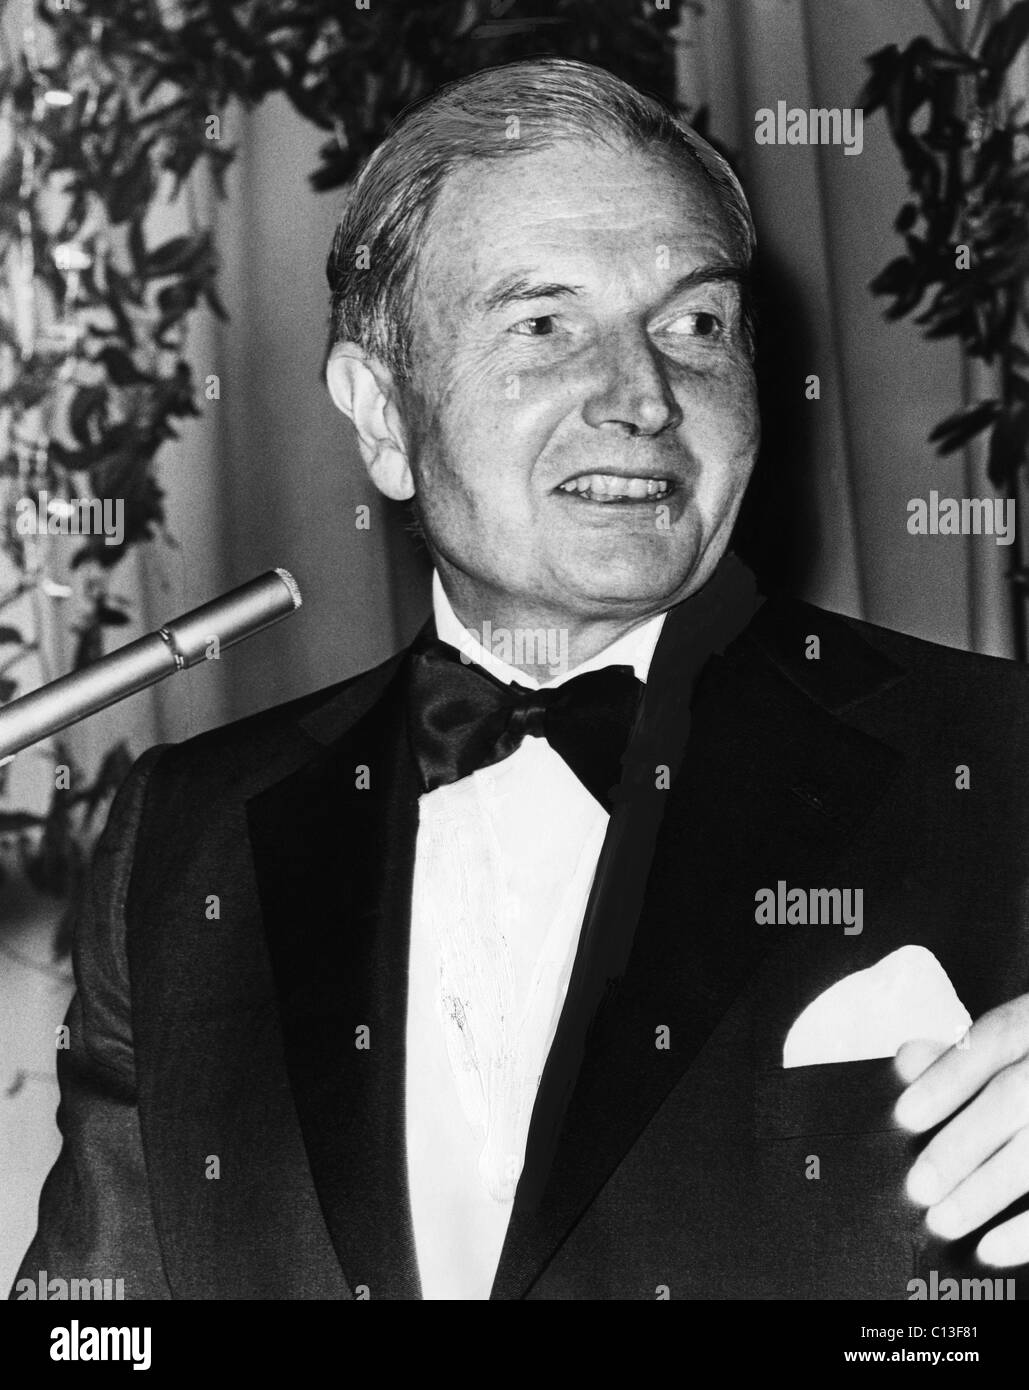 Rockefeller Family. Statesman David Rockefeller at a United Negro College Fund dinner, circa mid-1970s. - Stock Image